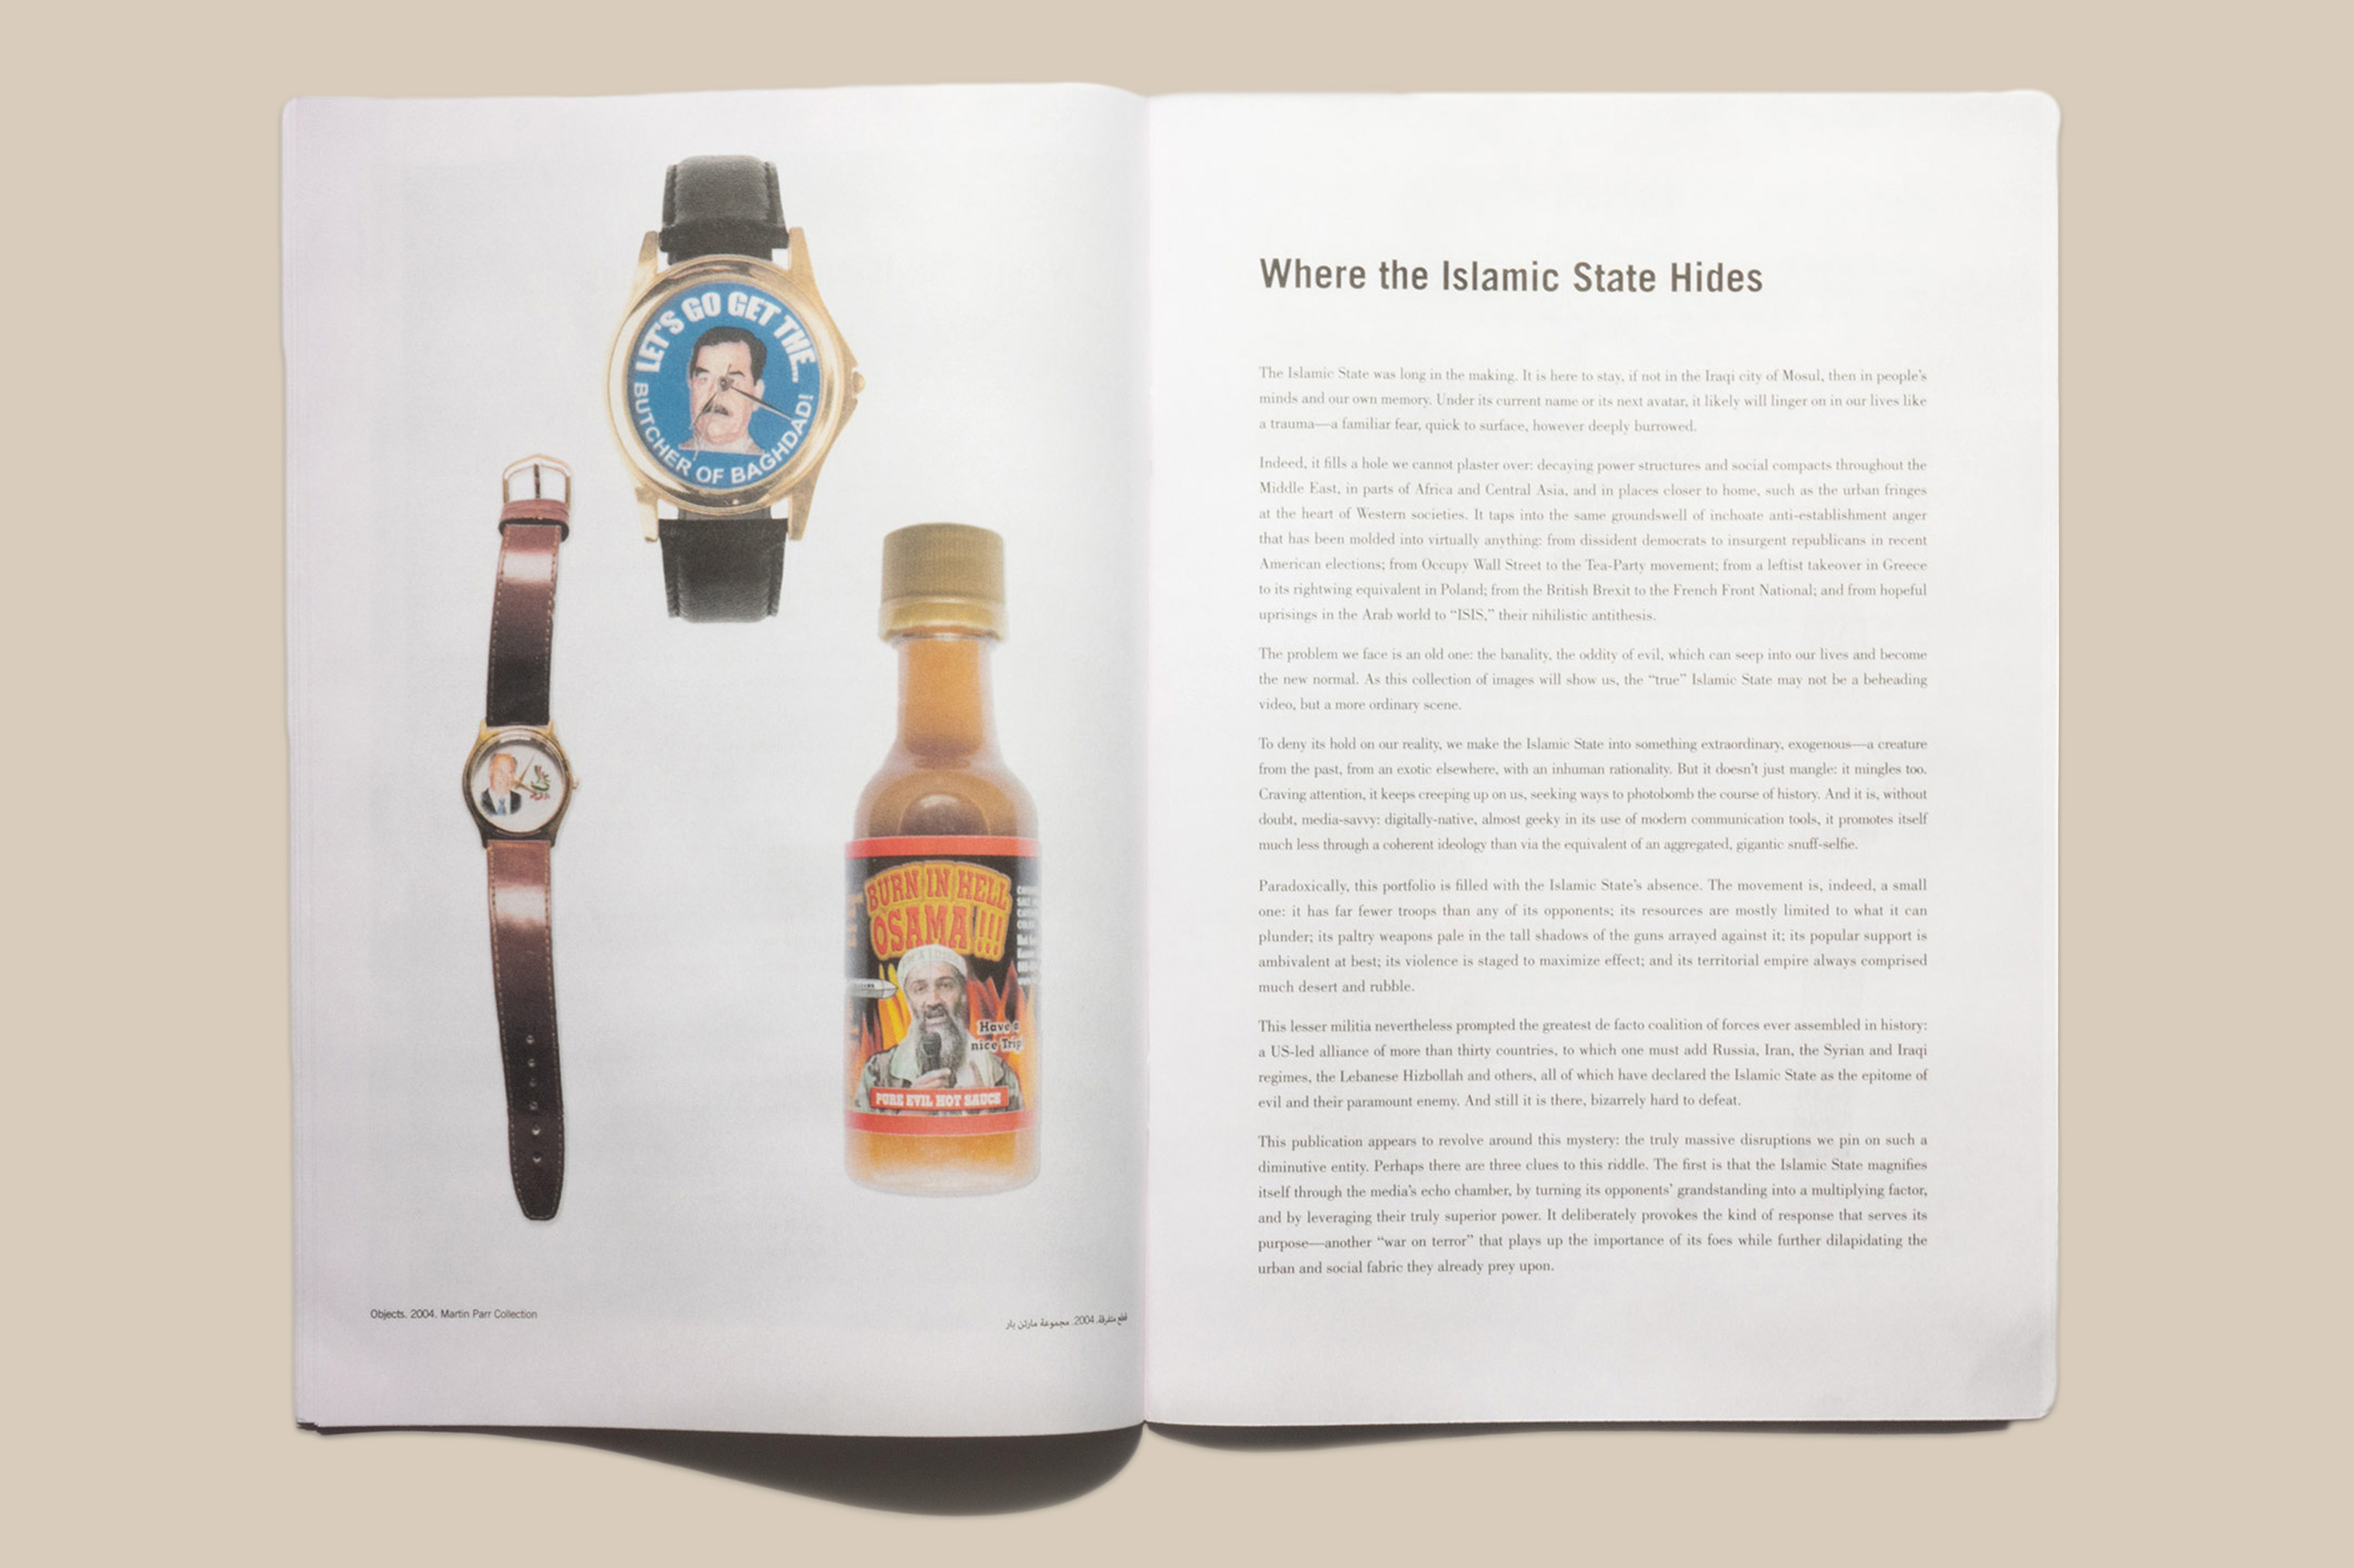 An excerpt from Martin Parr's collection of memorabilia, from left: An Assad watch, 2012; a Saddam Hussein watch, 2004; and Osama Bin Laden hot sauce, 2014.